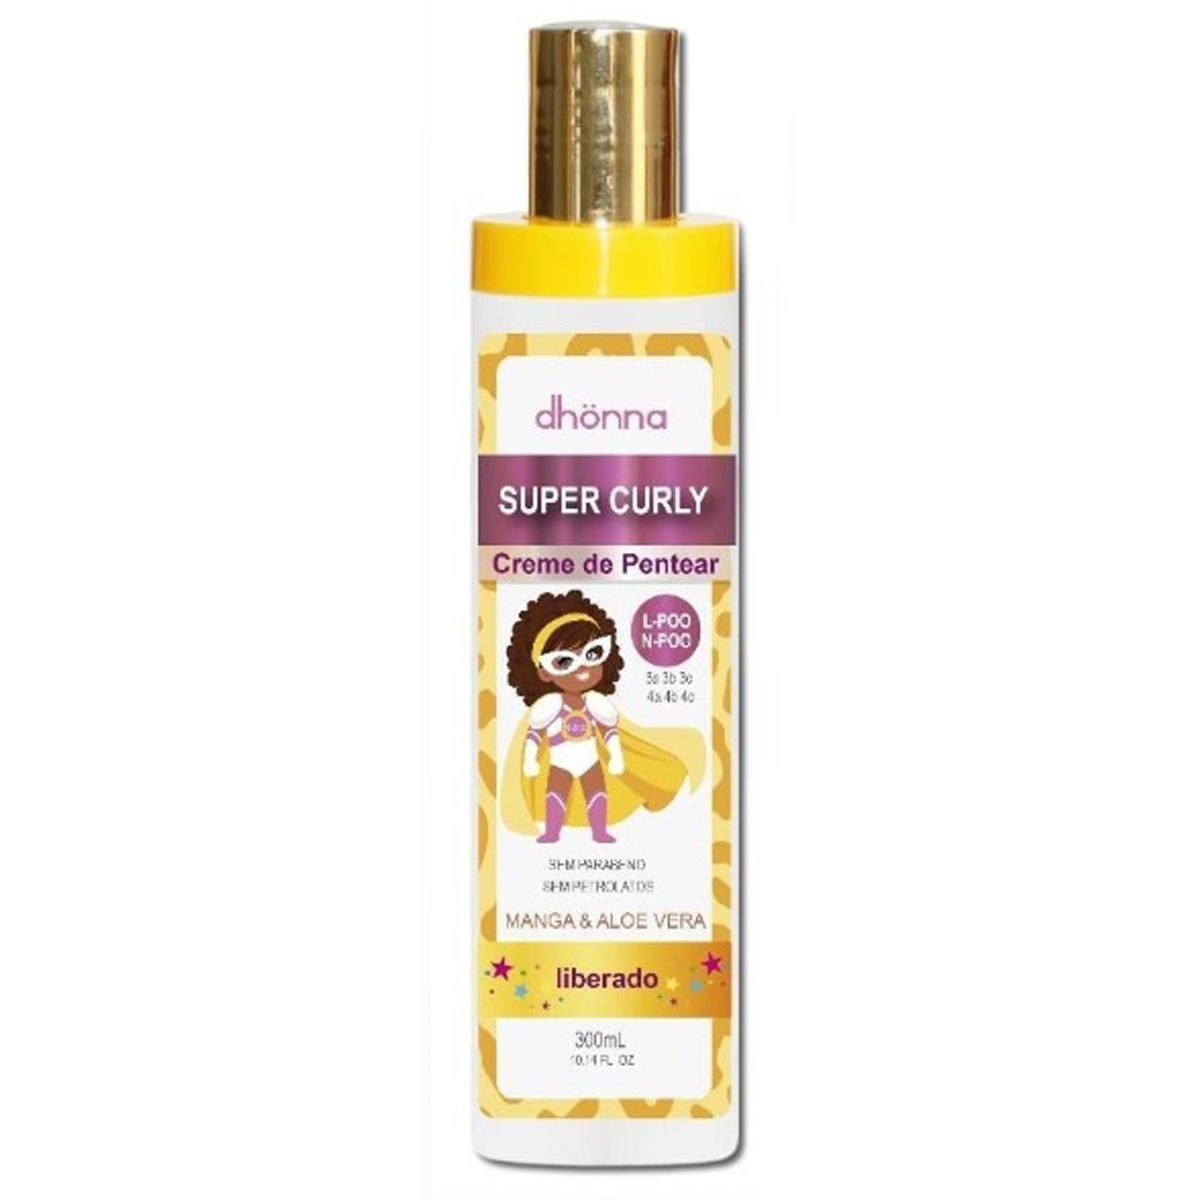 Dhonna - Super Curly - Creme de Pentear - 300ml